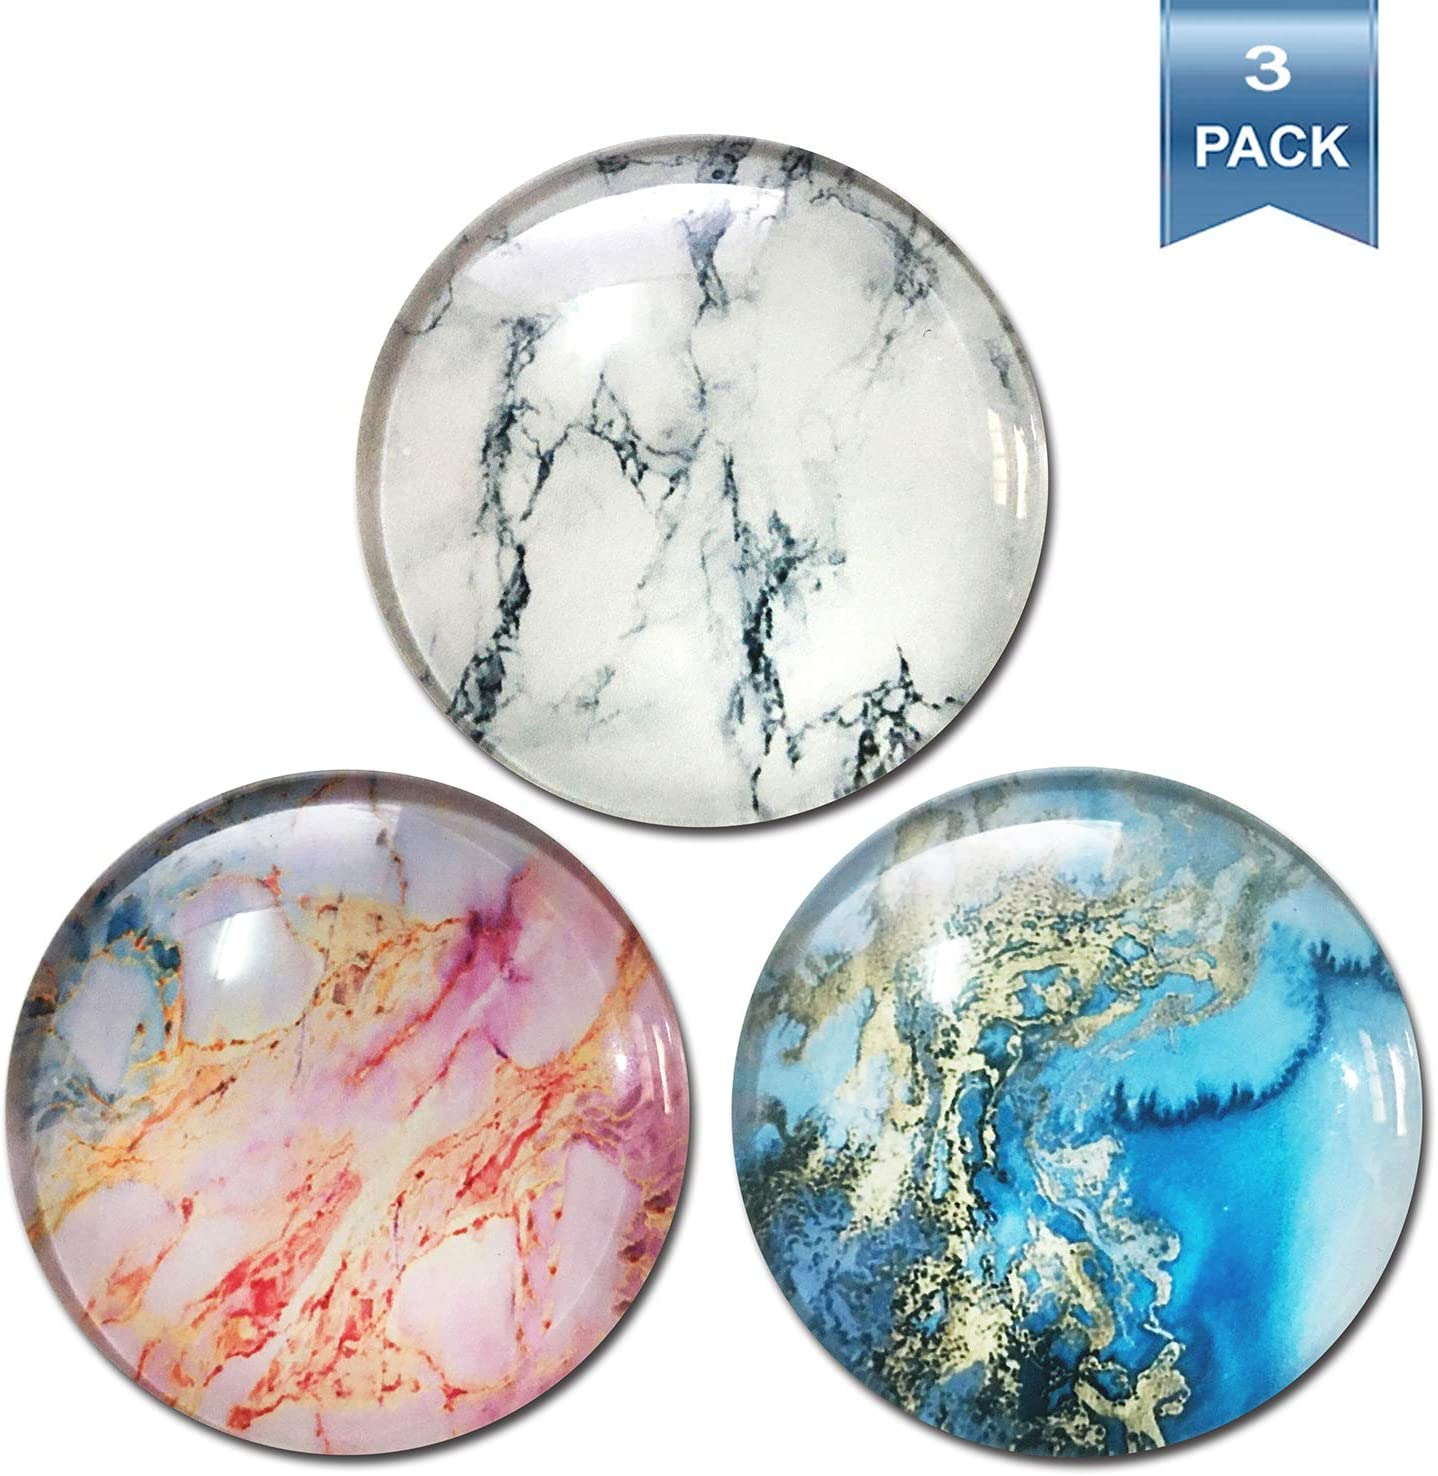 Refrigerator Magnets, Decorative Fridge Magnets, Calendar Cabinets Whiteboards Magnets for Office (3Pack Marble Magnets)